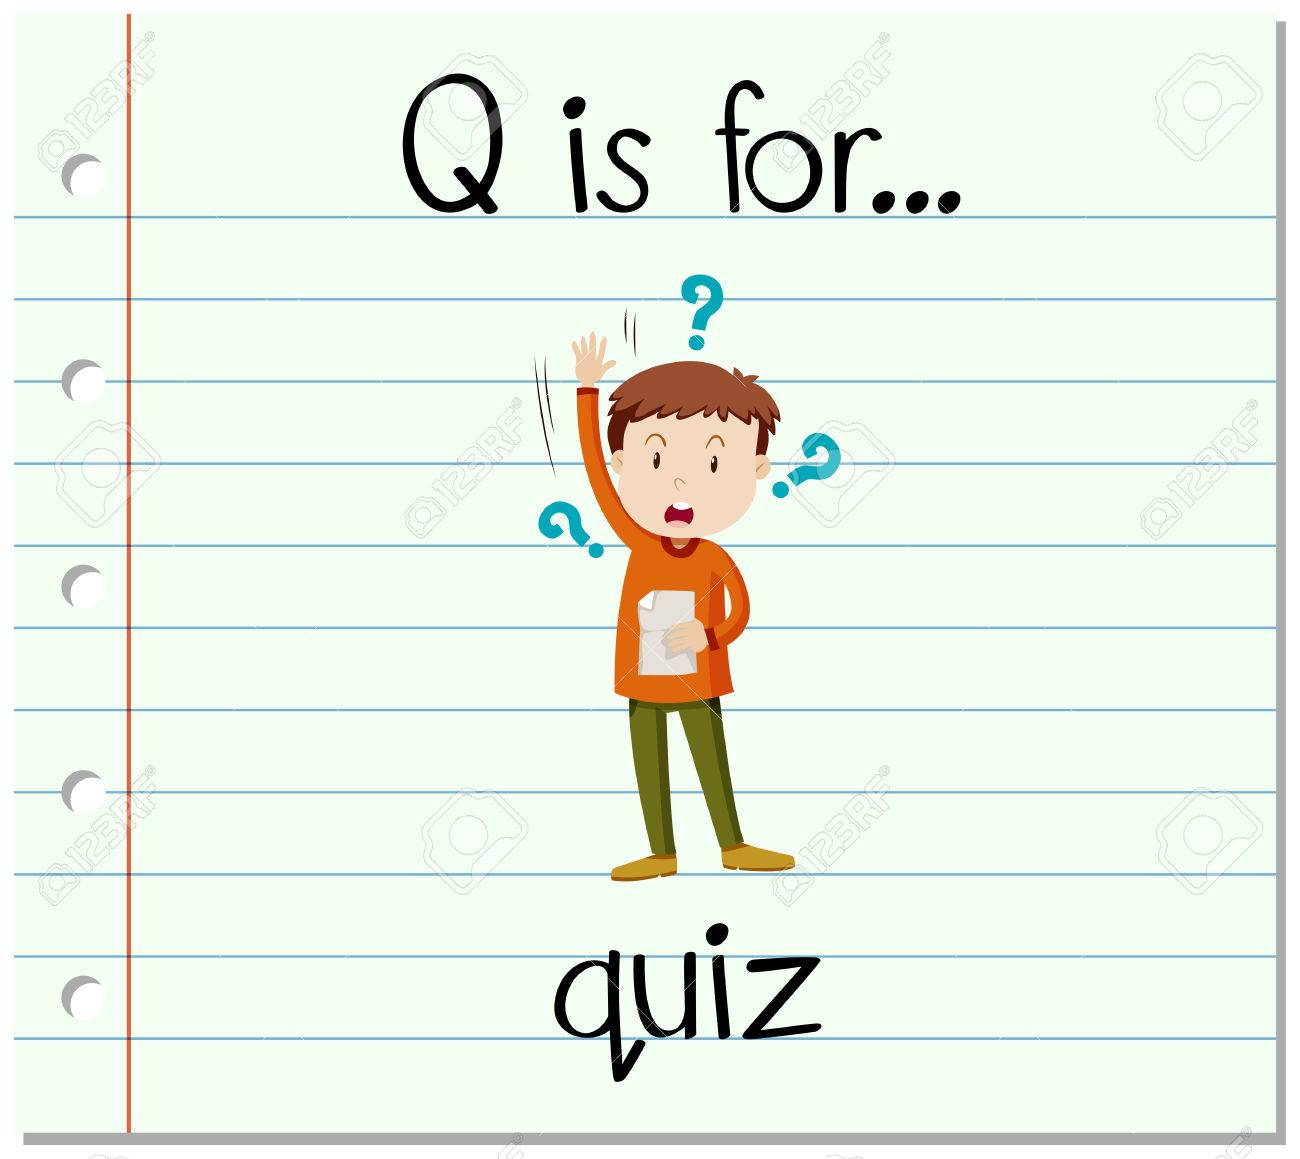 Flashcard Letter Q Is For Quiz Illustration Royalty Free Cliparts Vectors And Stock Illustration Image 57289602